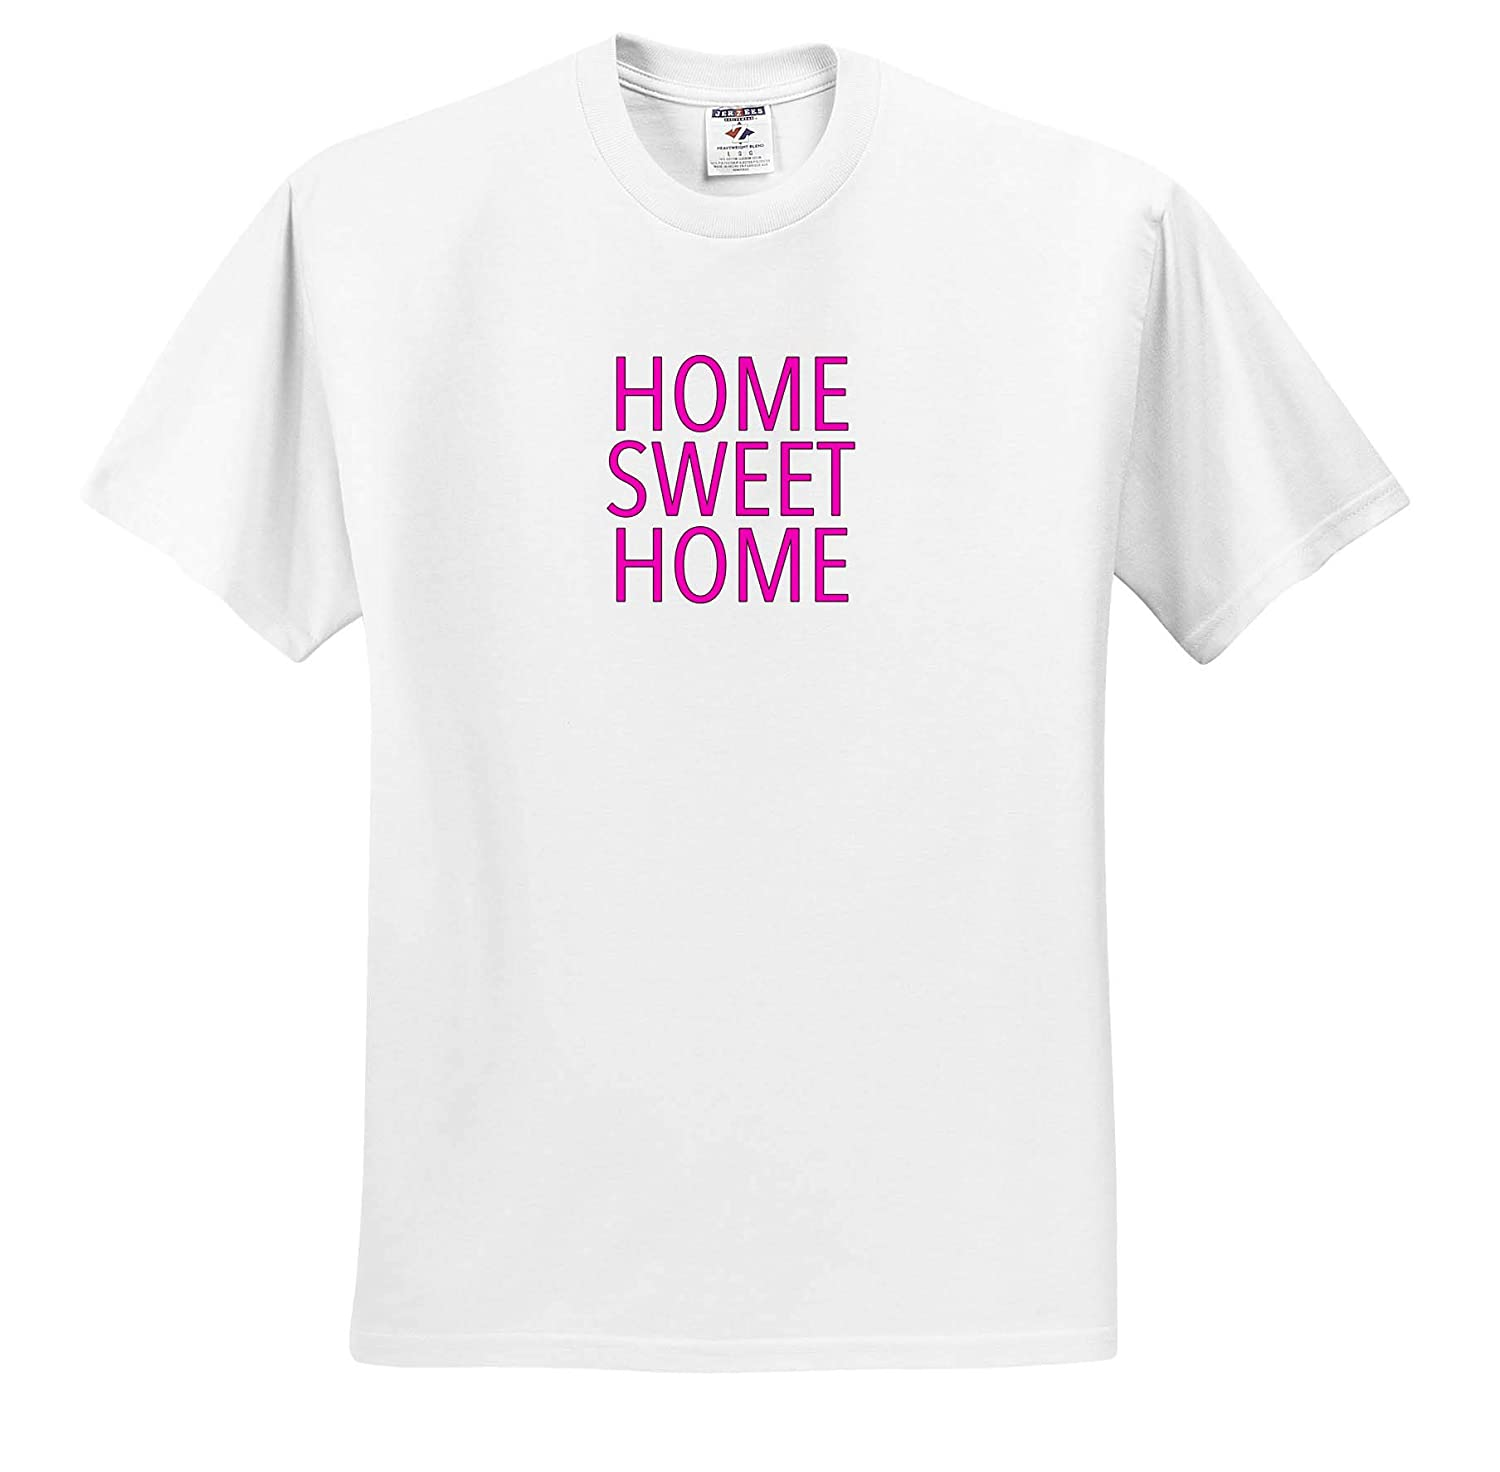 3dRose EvaDane Inspirational Sayings Home Sweet Home Pink Adult T-Shirt XL ts/_308894